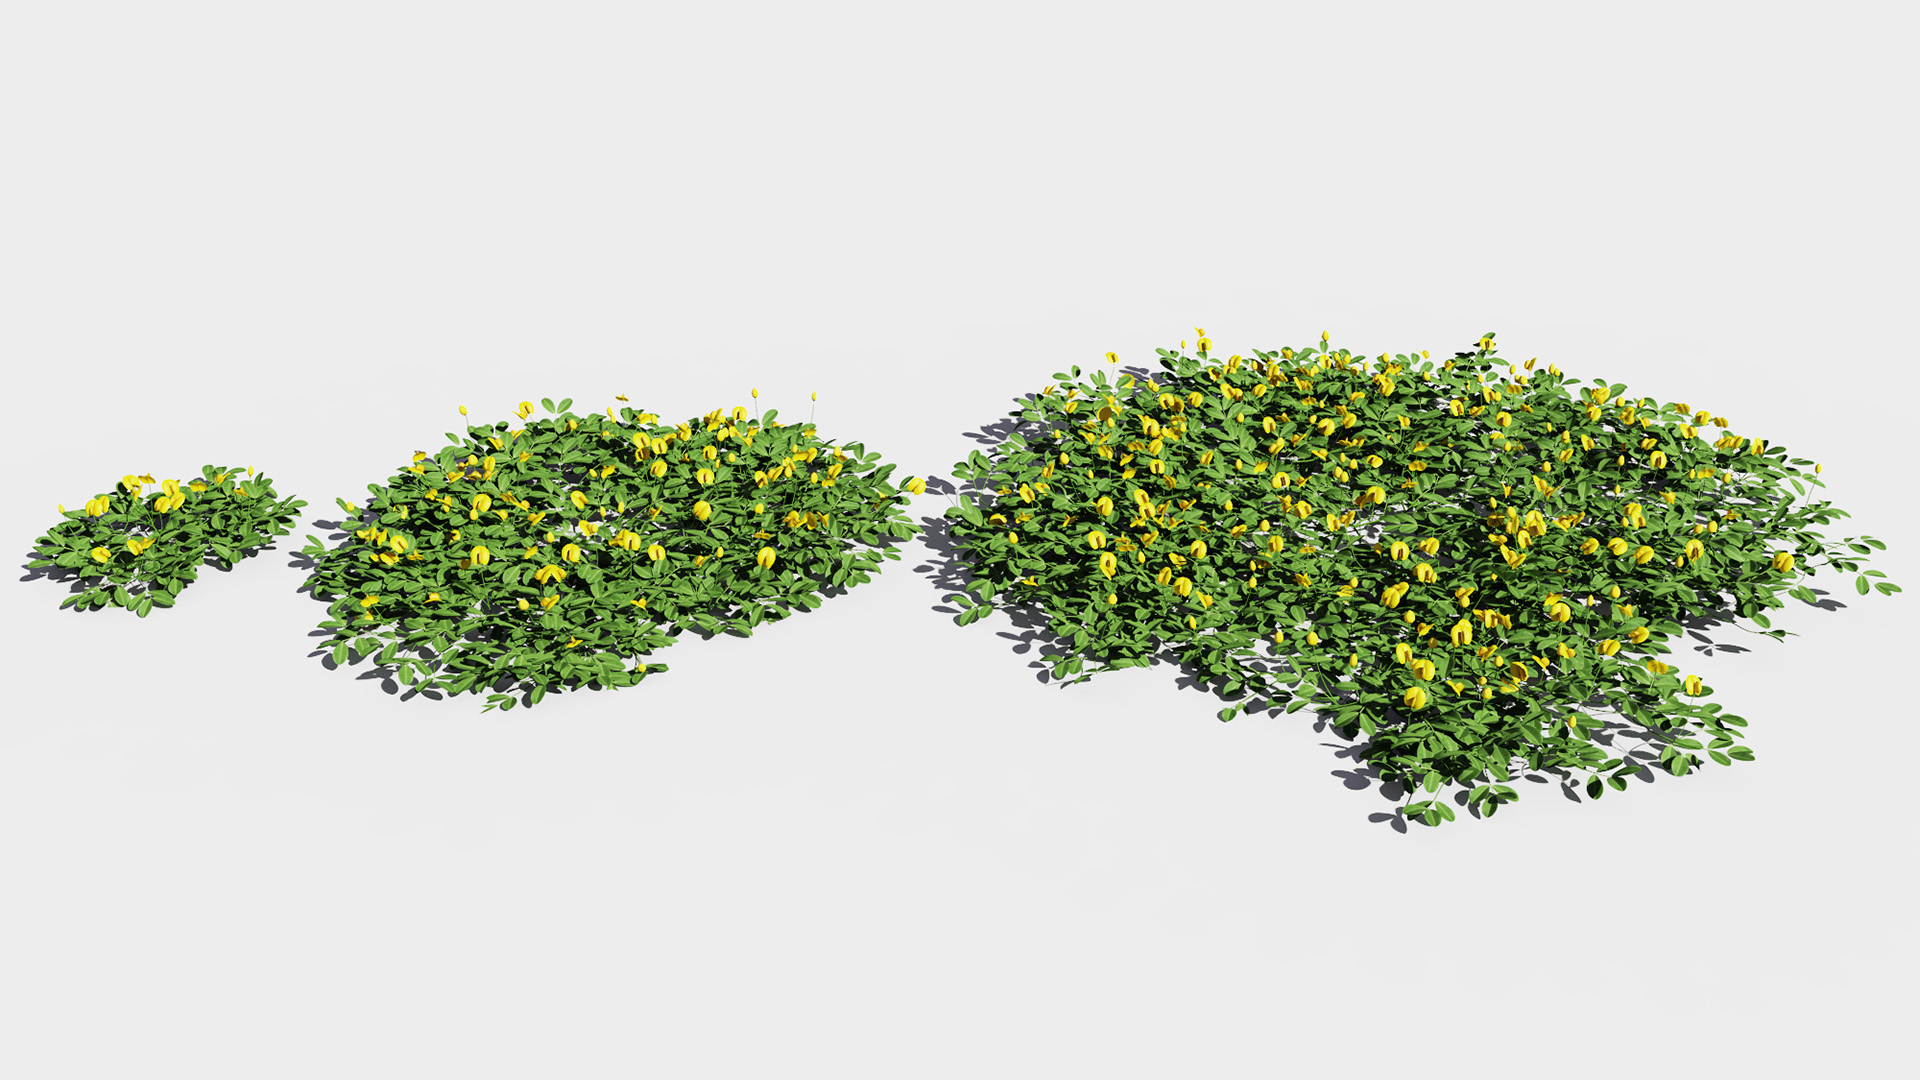 3D model of the Peanut plant Arachis duranensis maturity variations